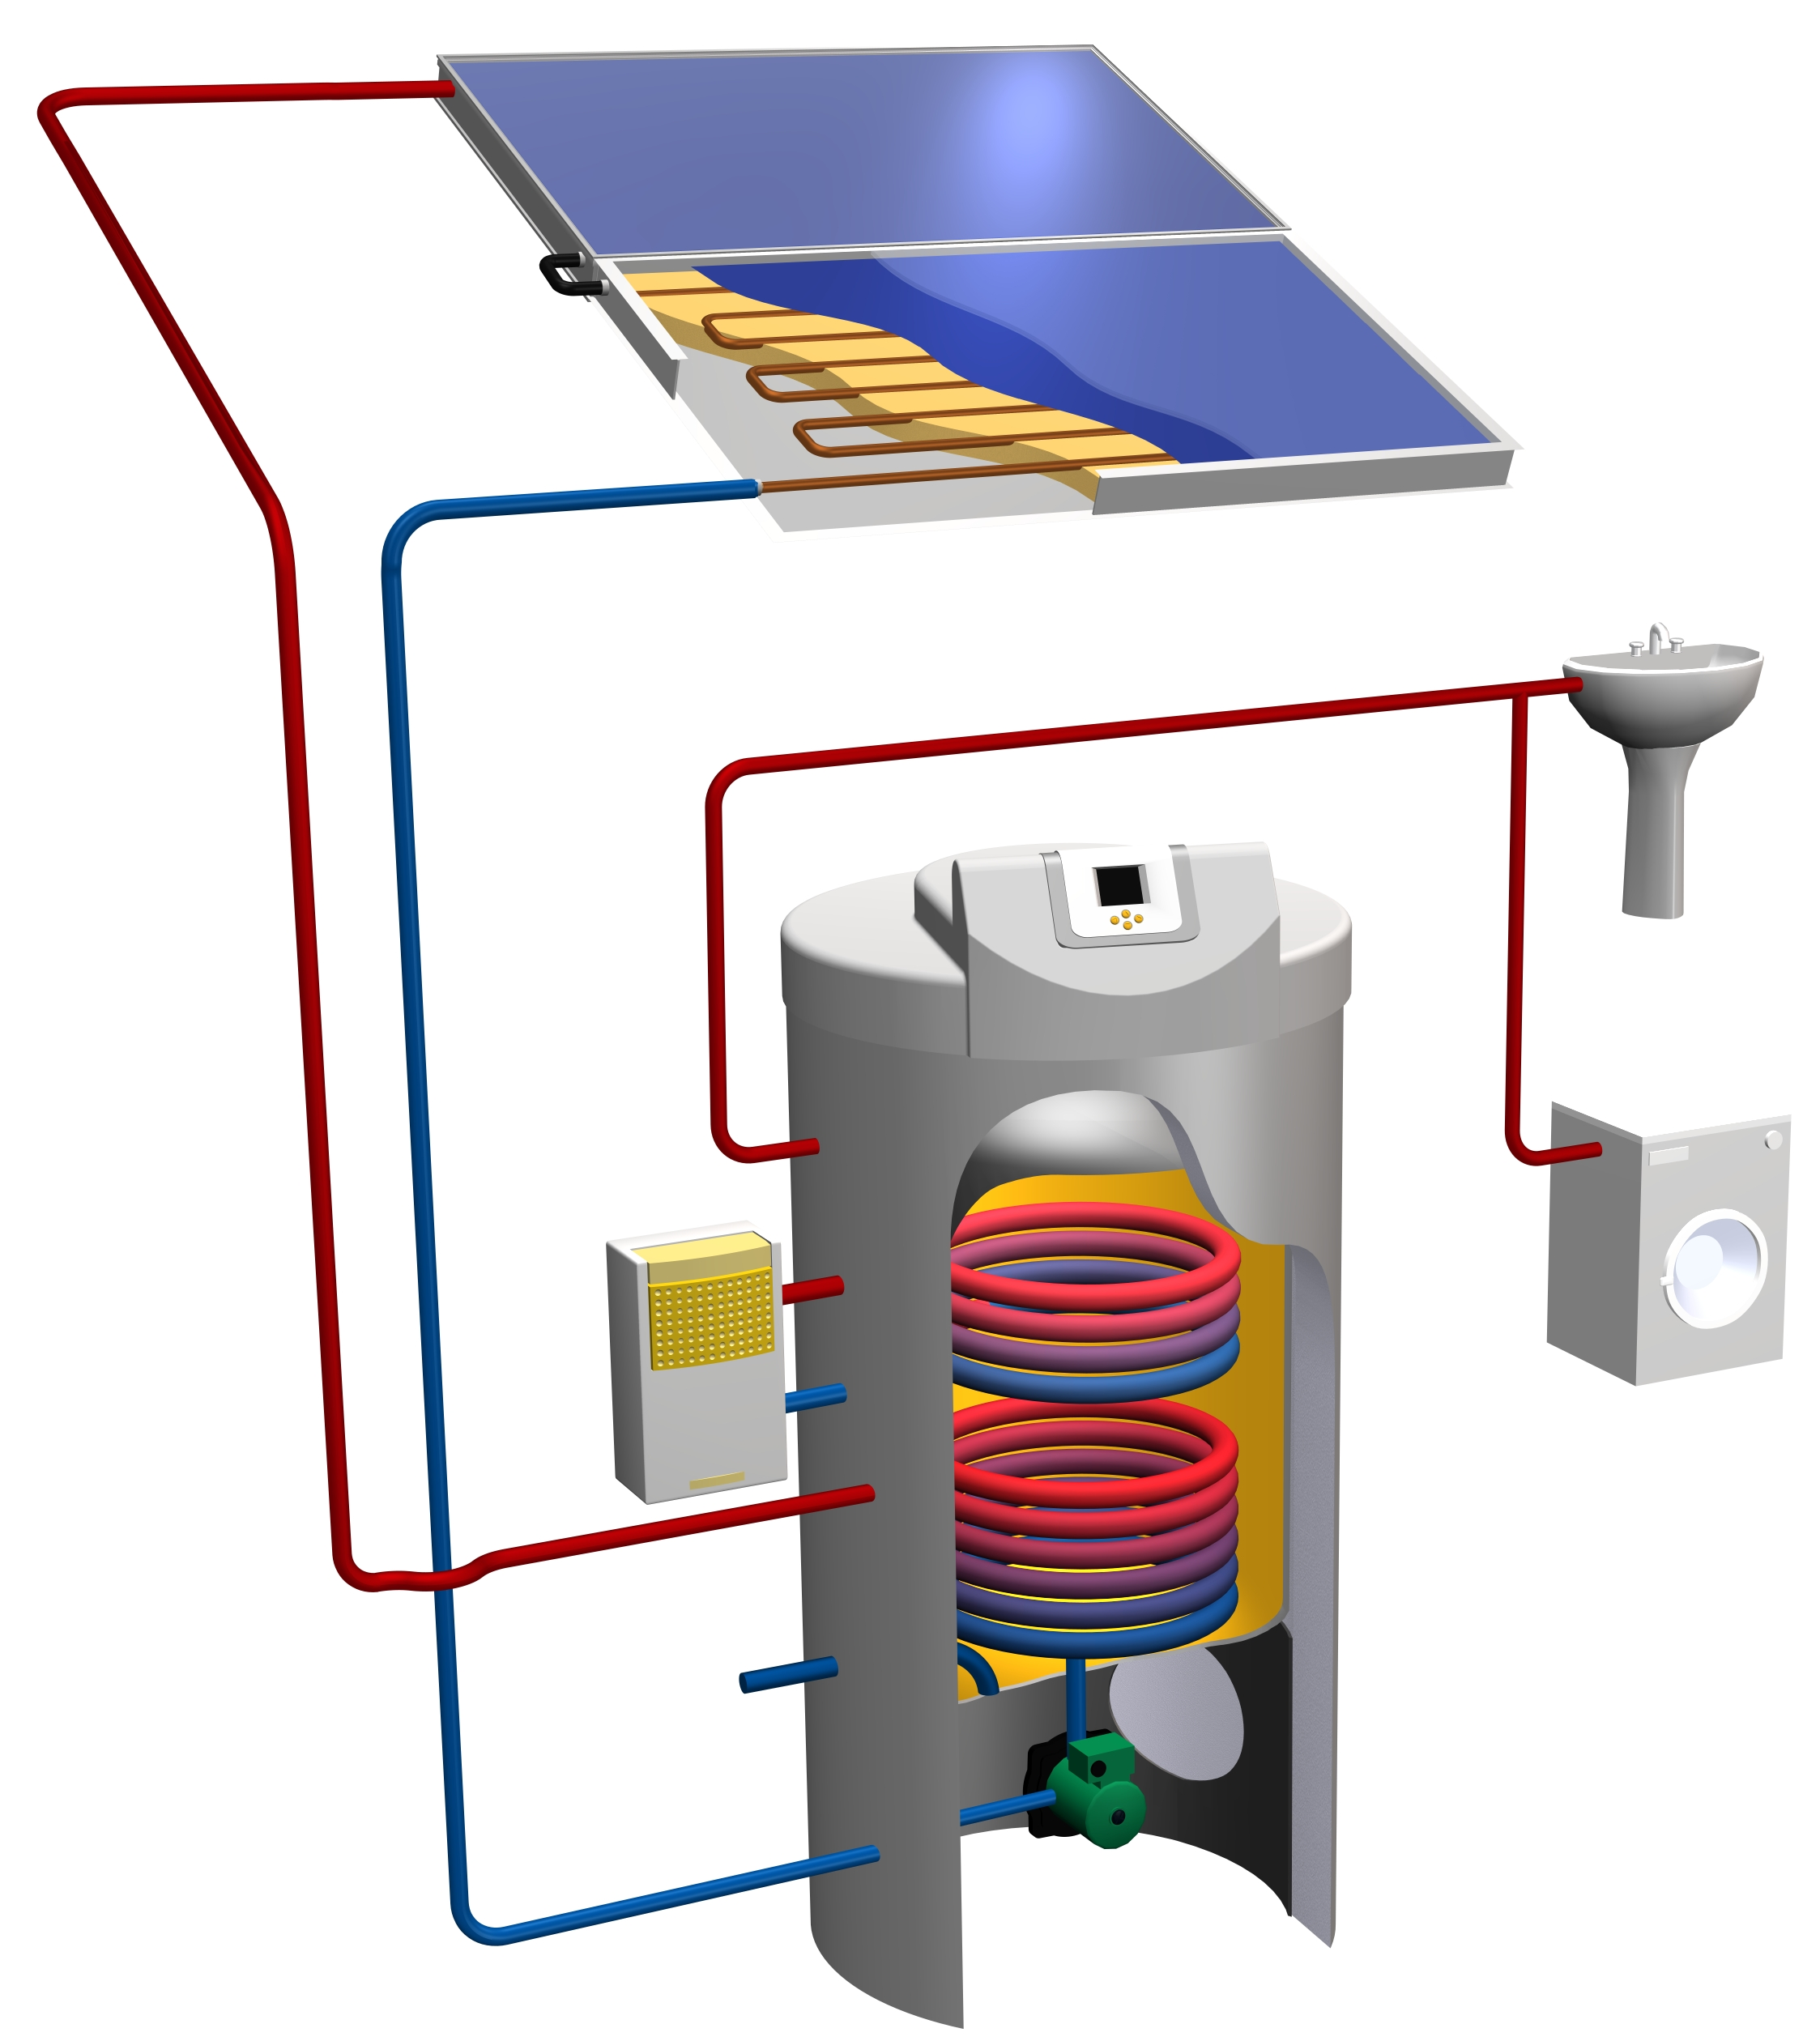 German innovation in solar water heating buildinggreen for New and innovative heating and cooling system design